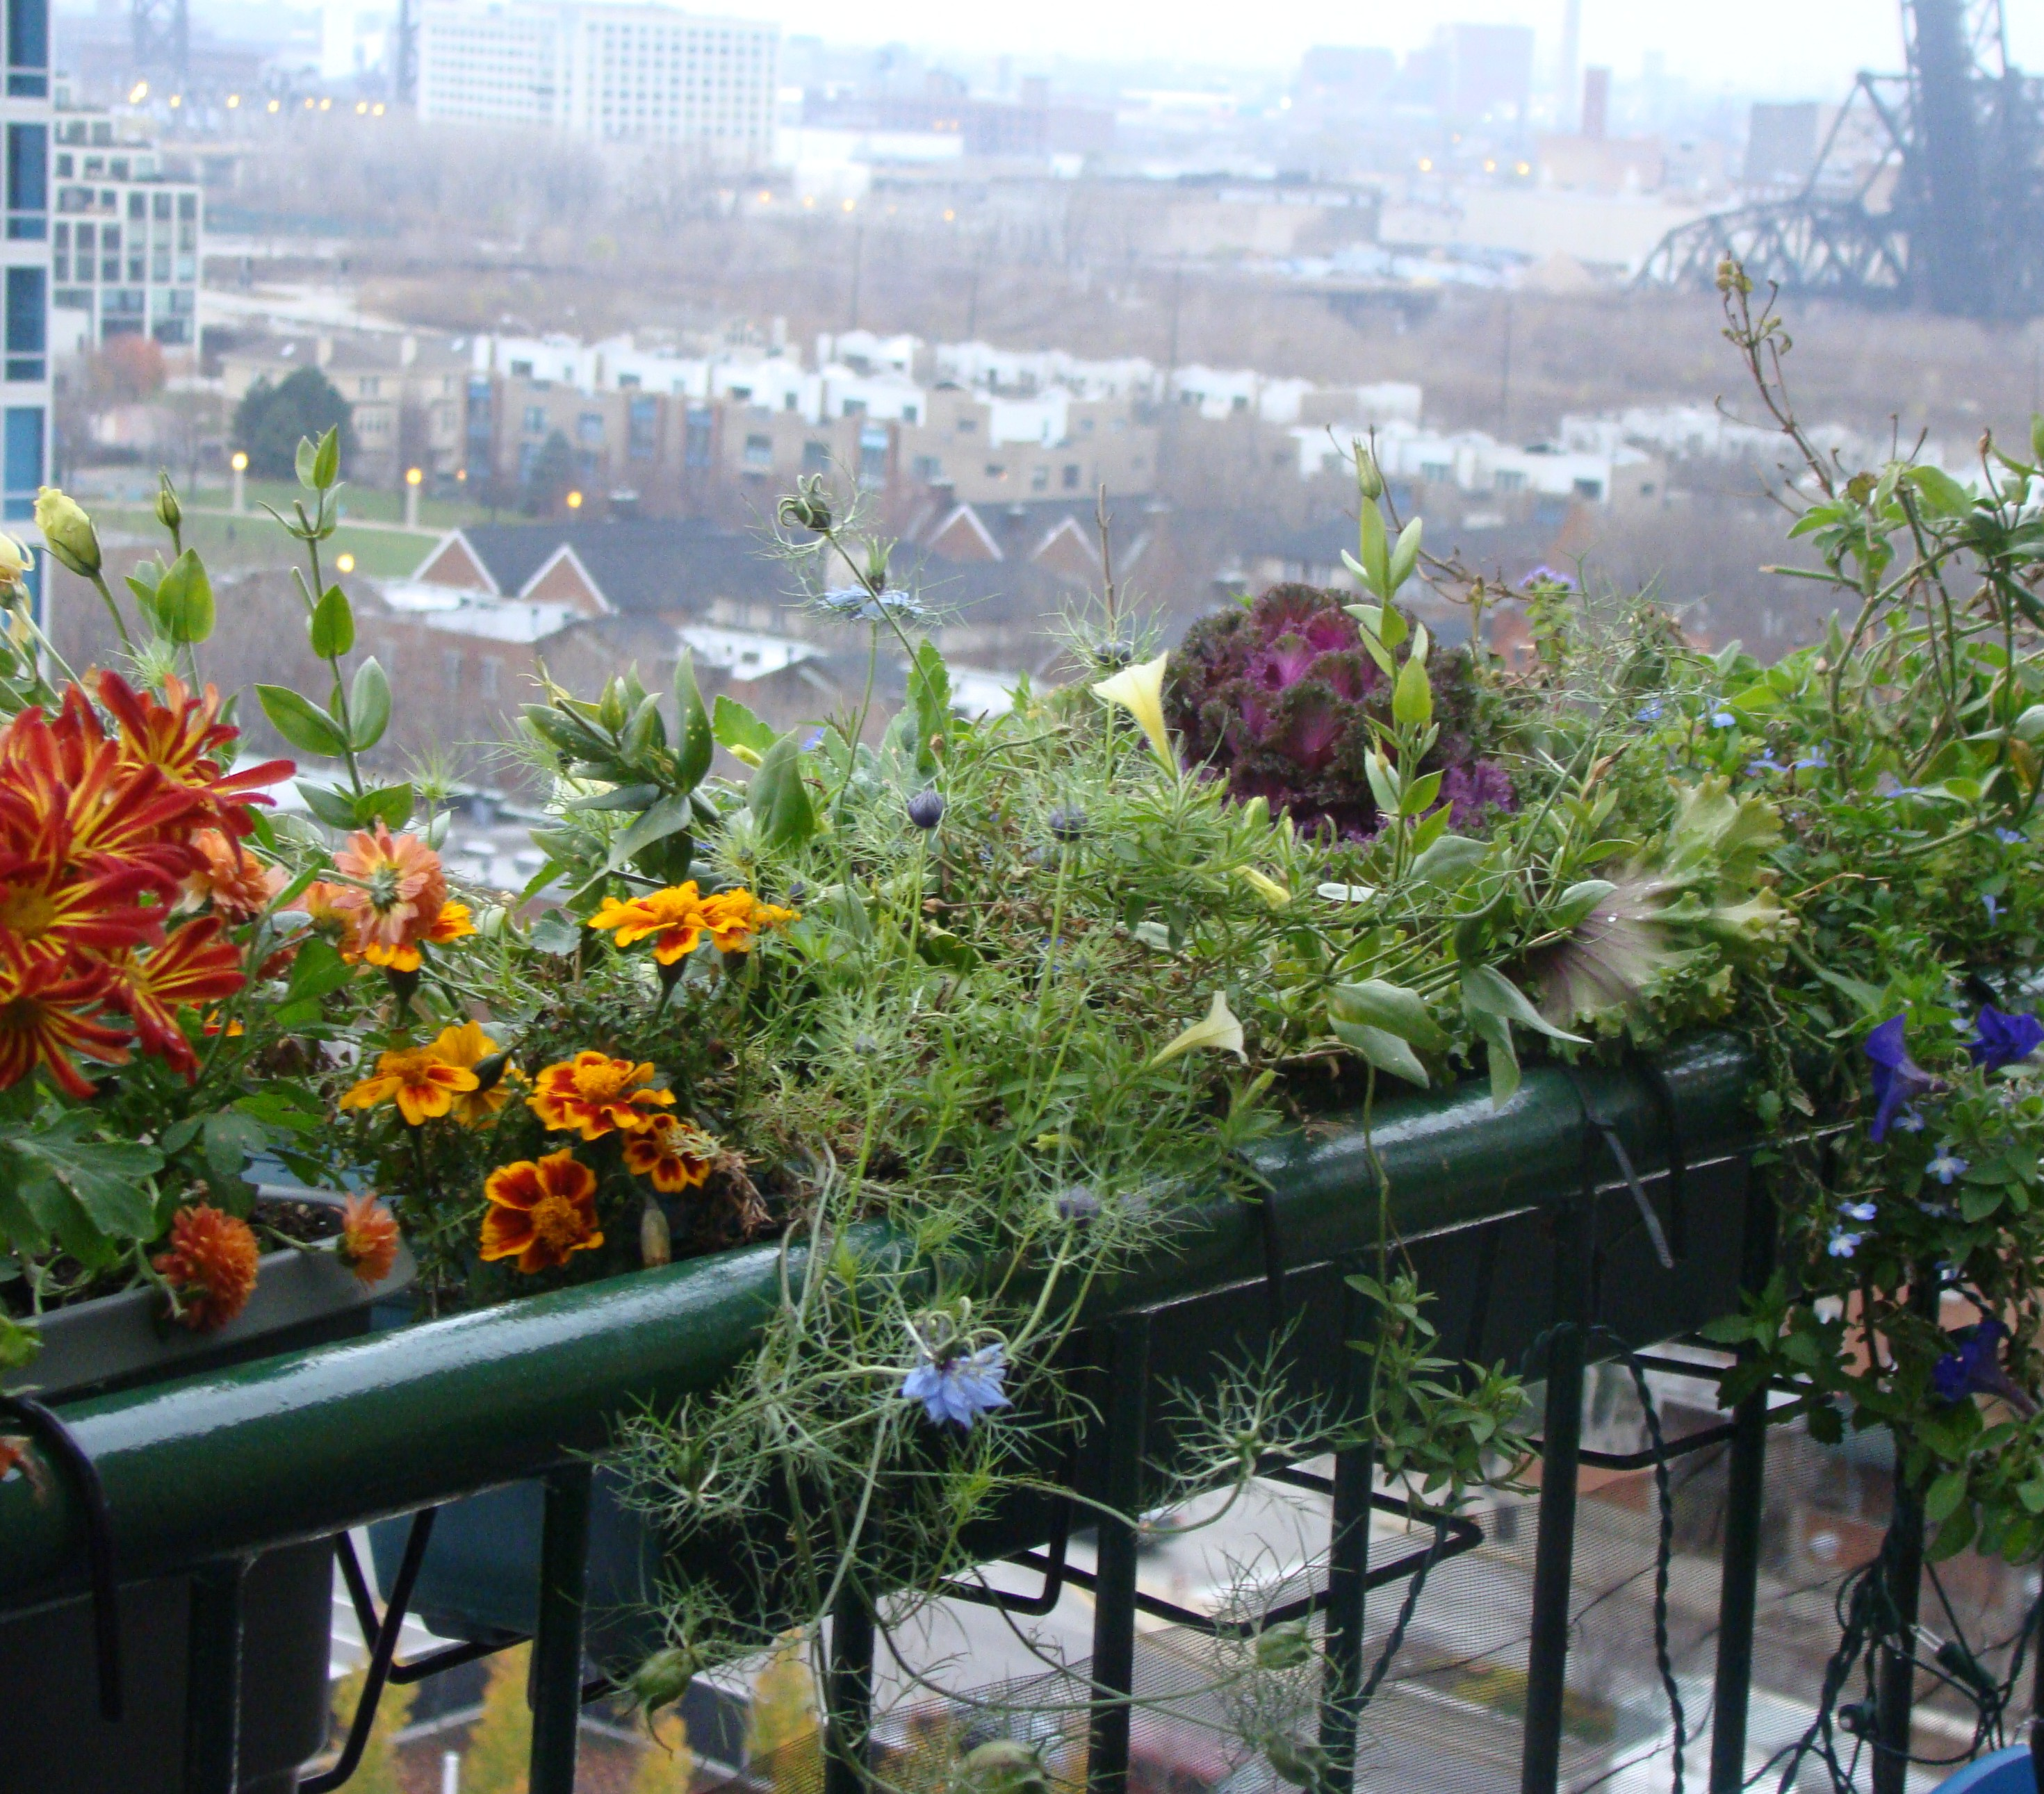 Garden Balconies: For Urban Balcony Gardener, There's No Denying The Coming